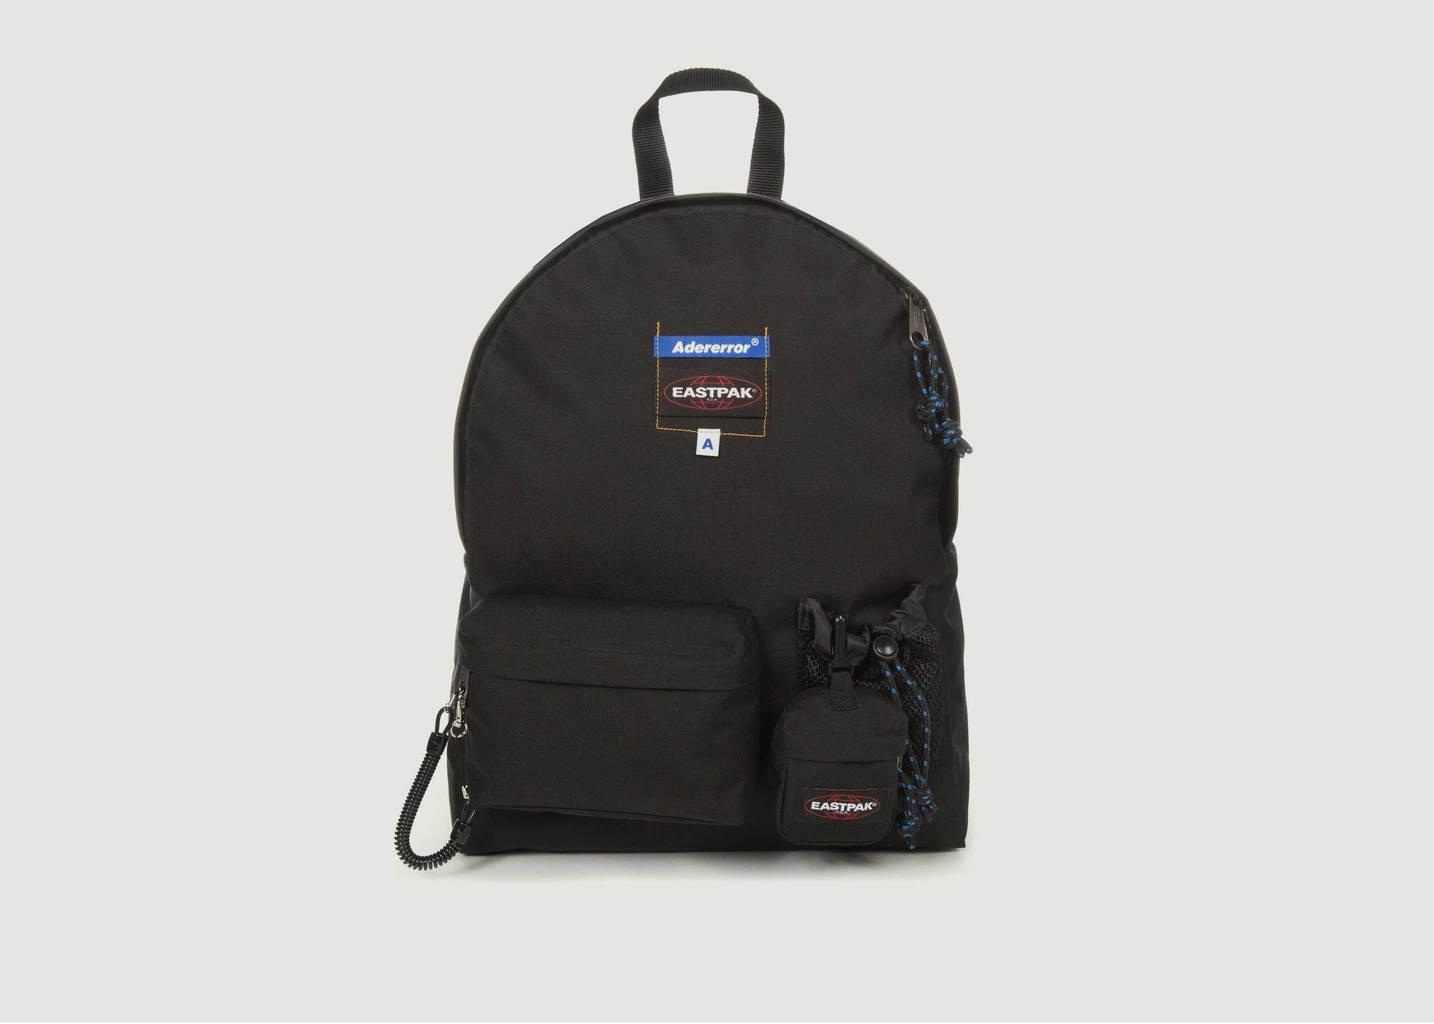 sac a dos eastpak noir black friday